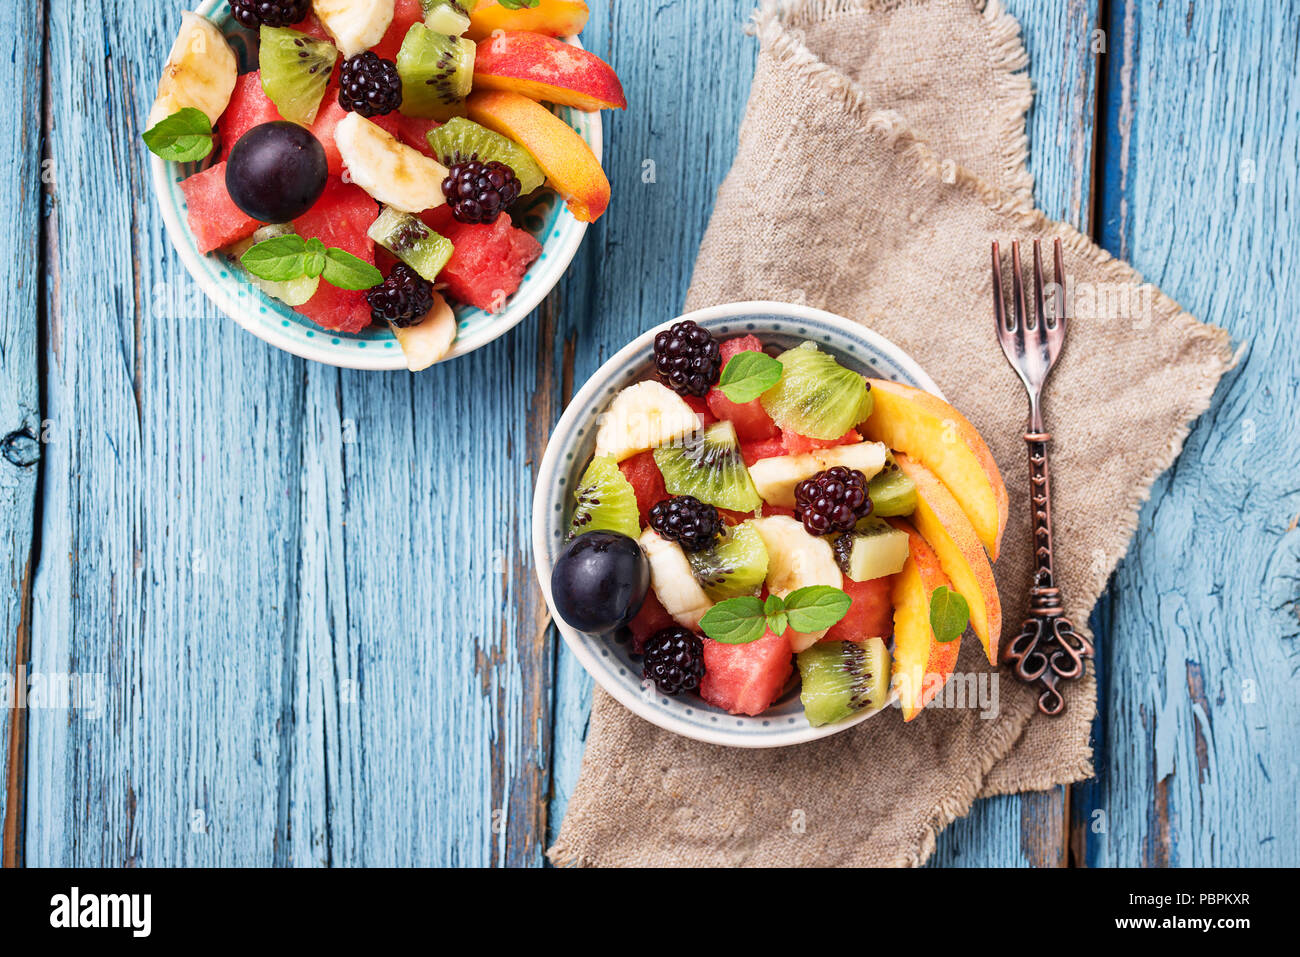 Fruits salad with watermelon, banana, kiwi and berries - Stock Image